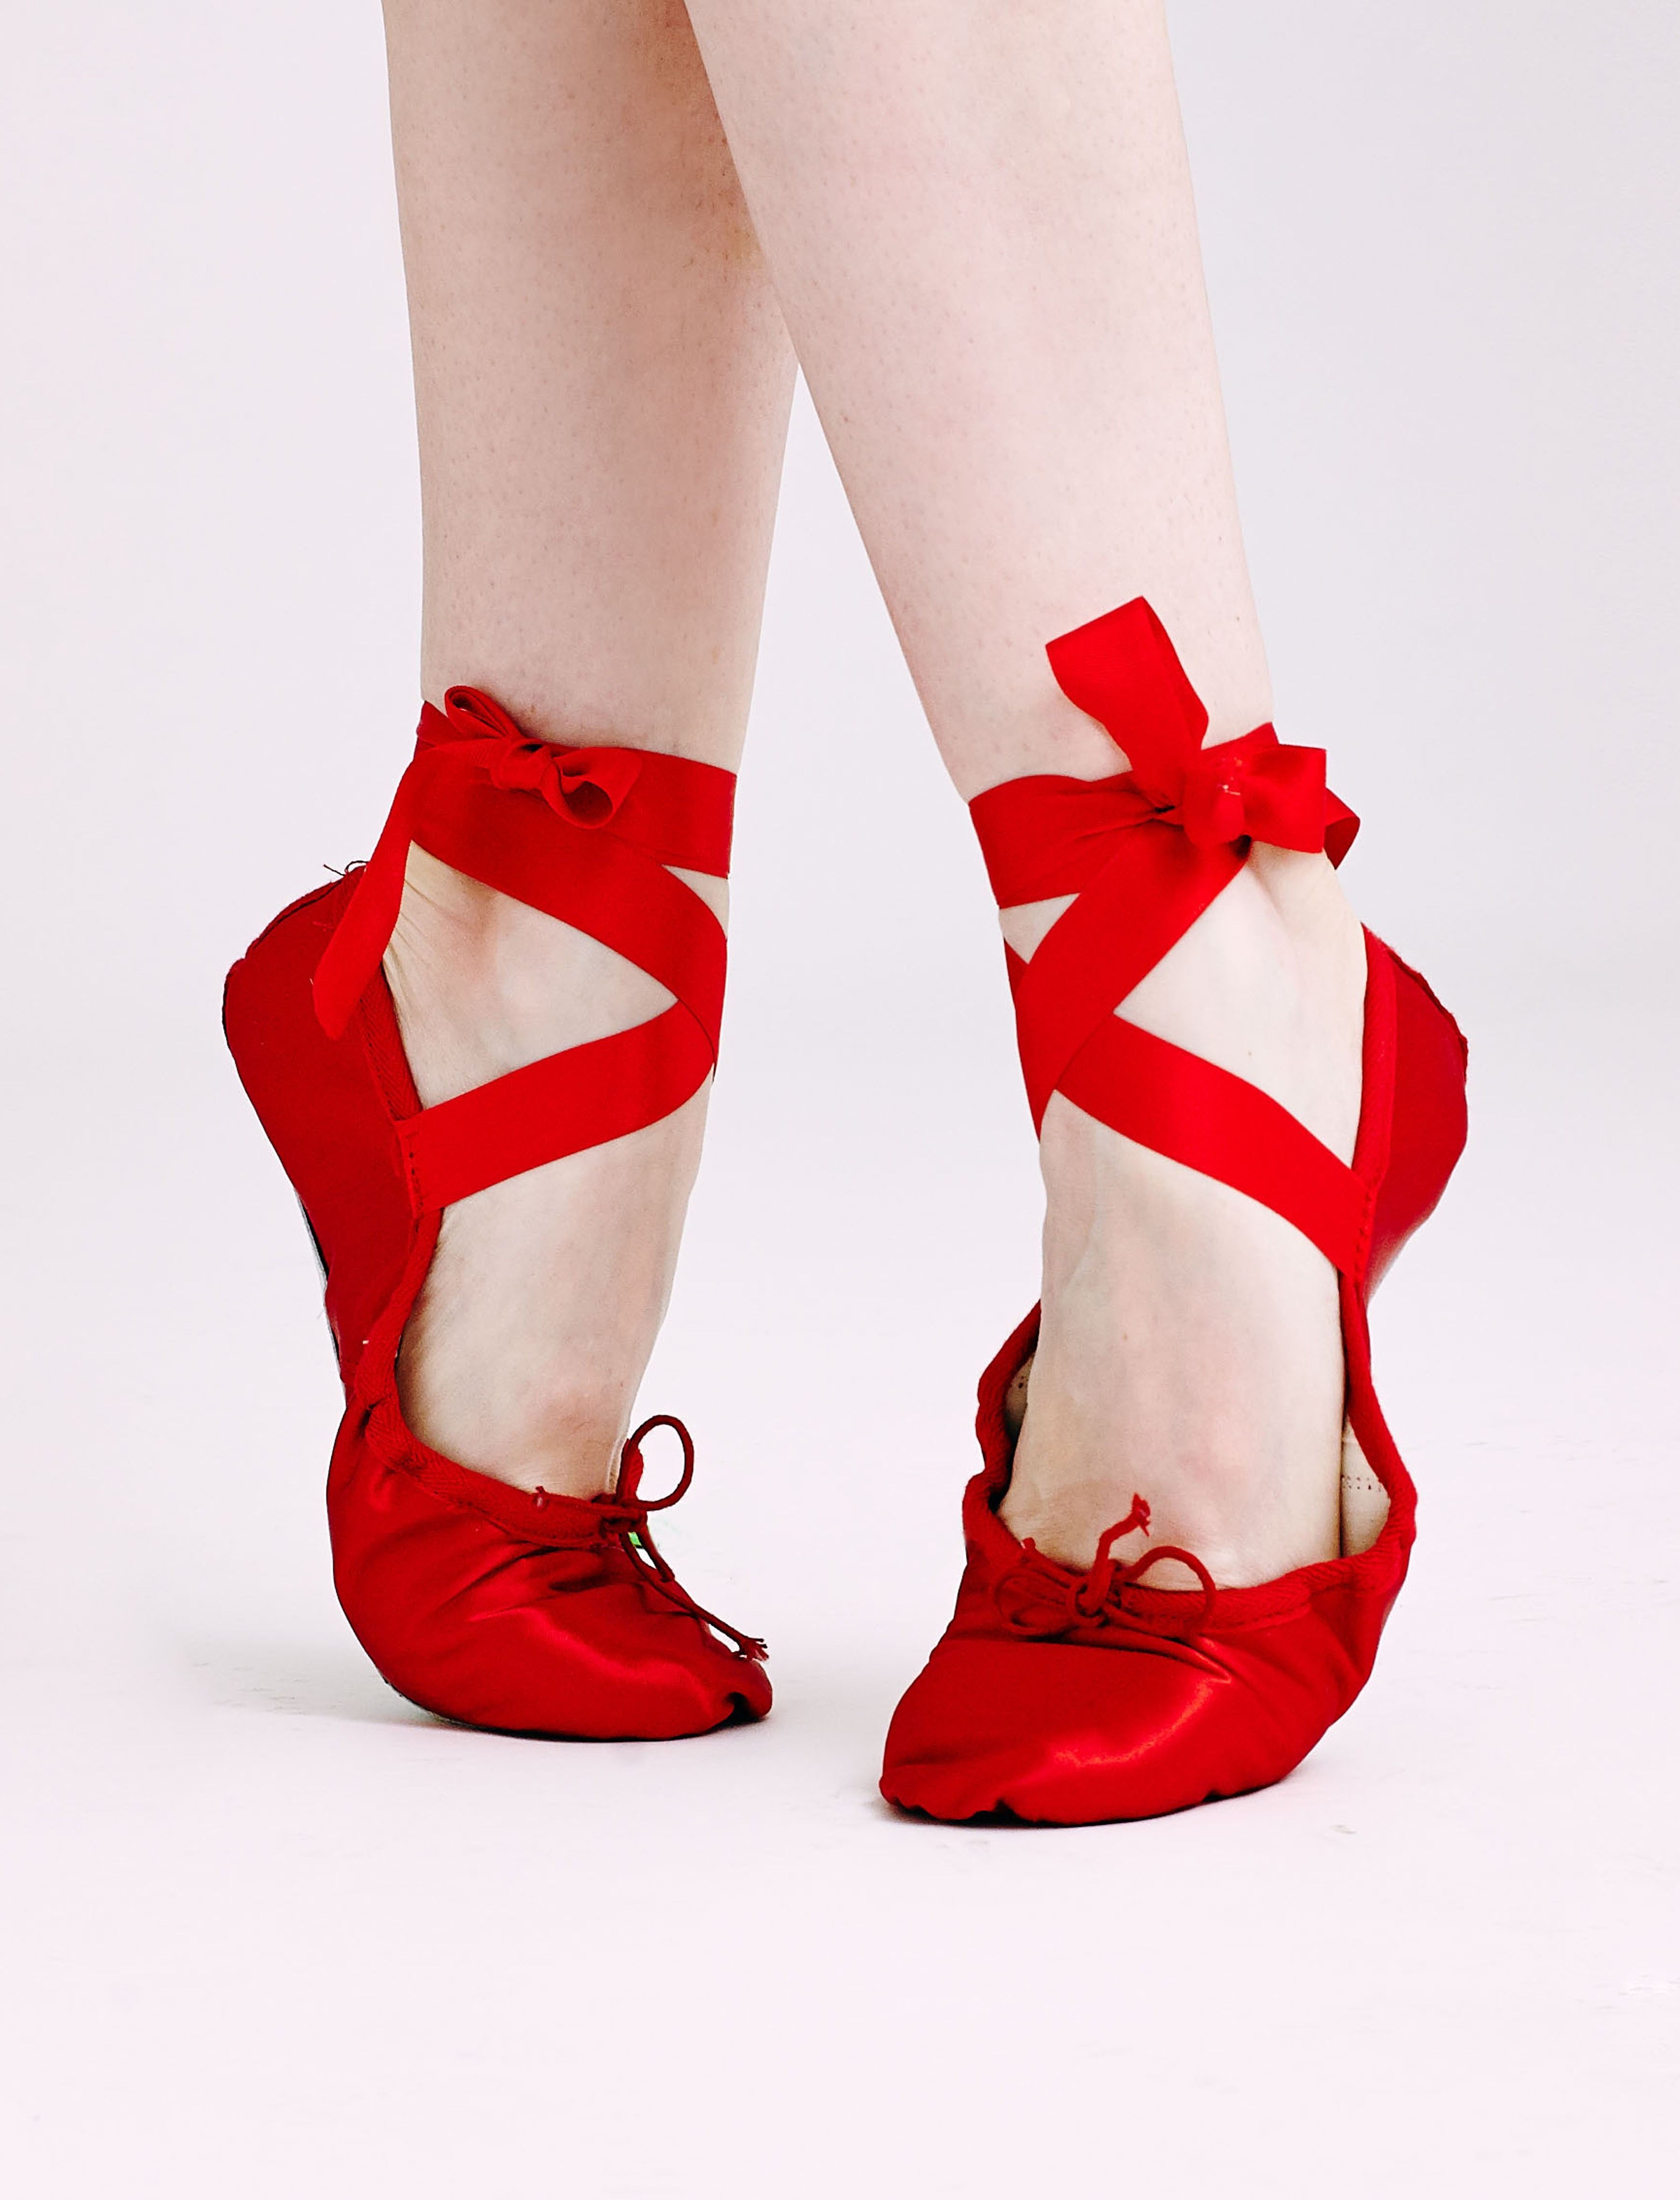 3fff54ceae8 Satin Workout Slippers with Ribbons from Ballet Beautiful. Simple red  ballerina slippers